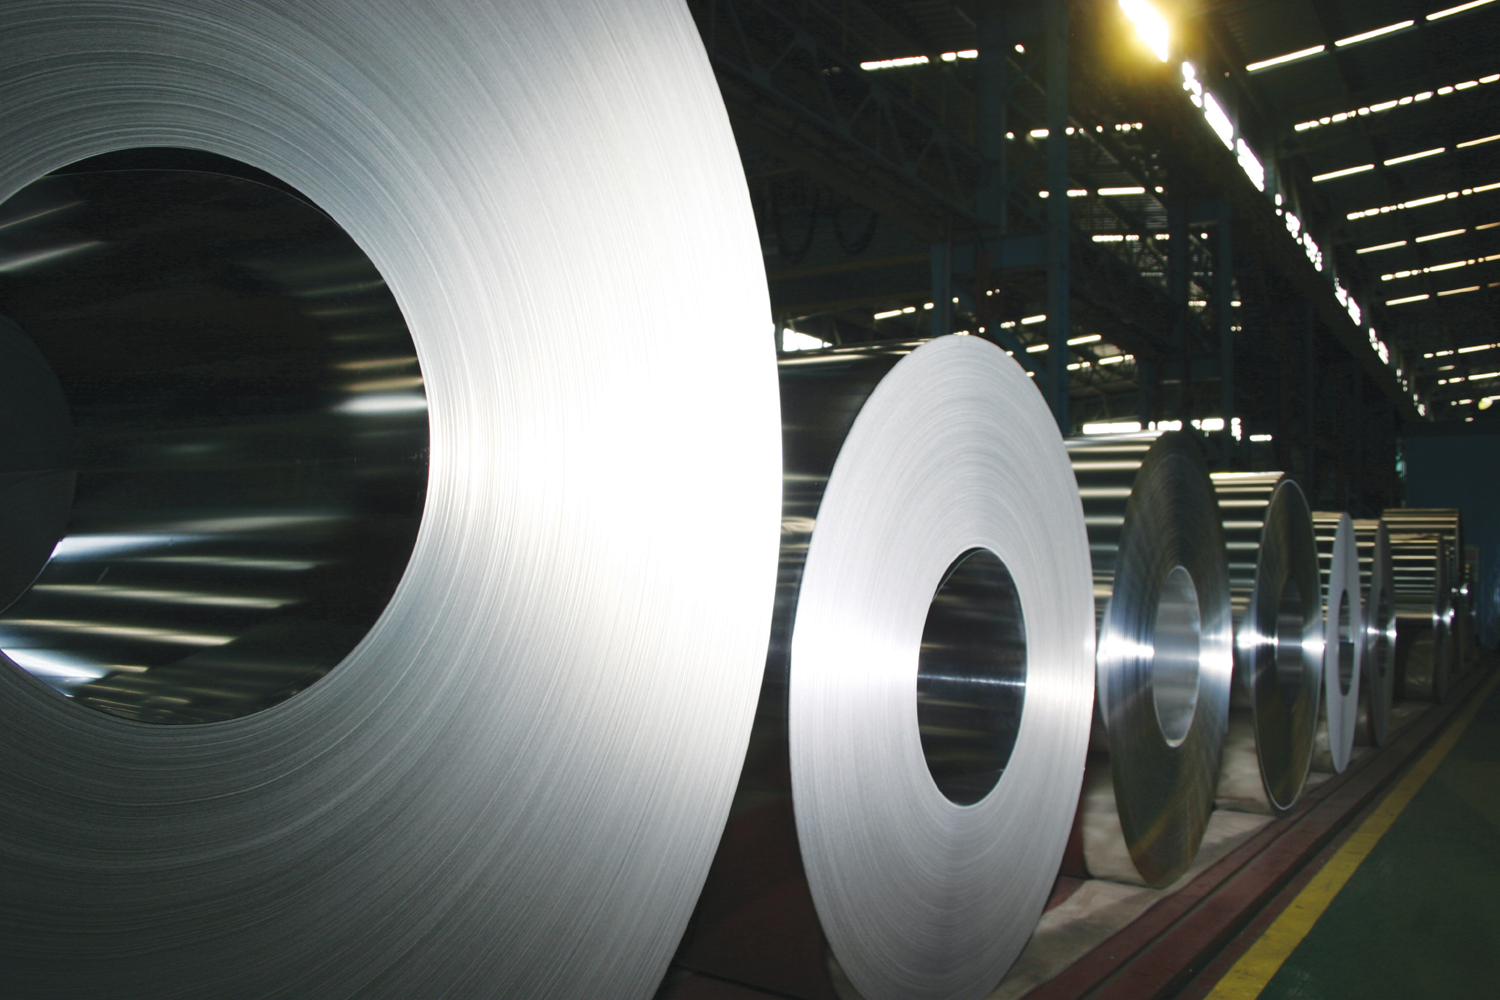 POSCO-produced rolled steel.